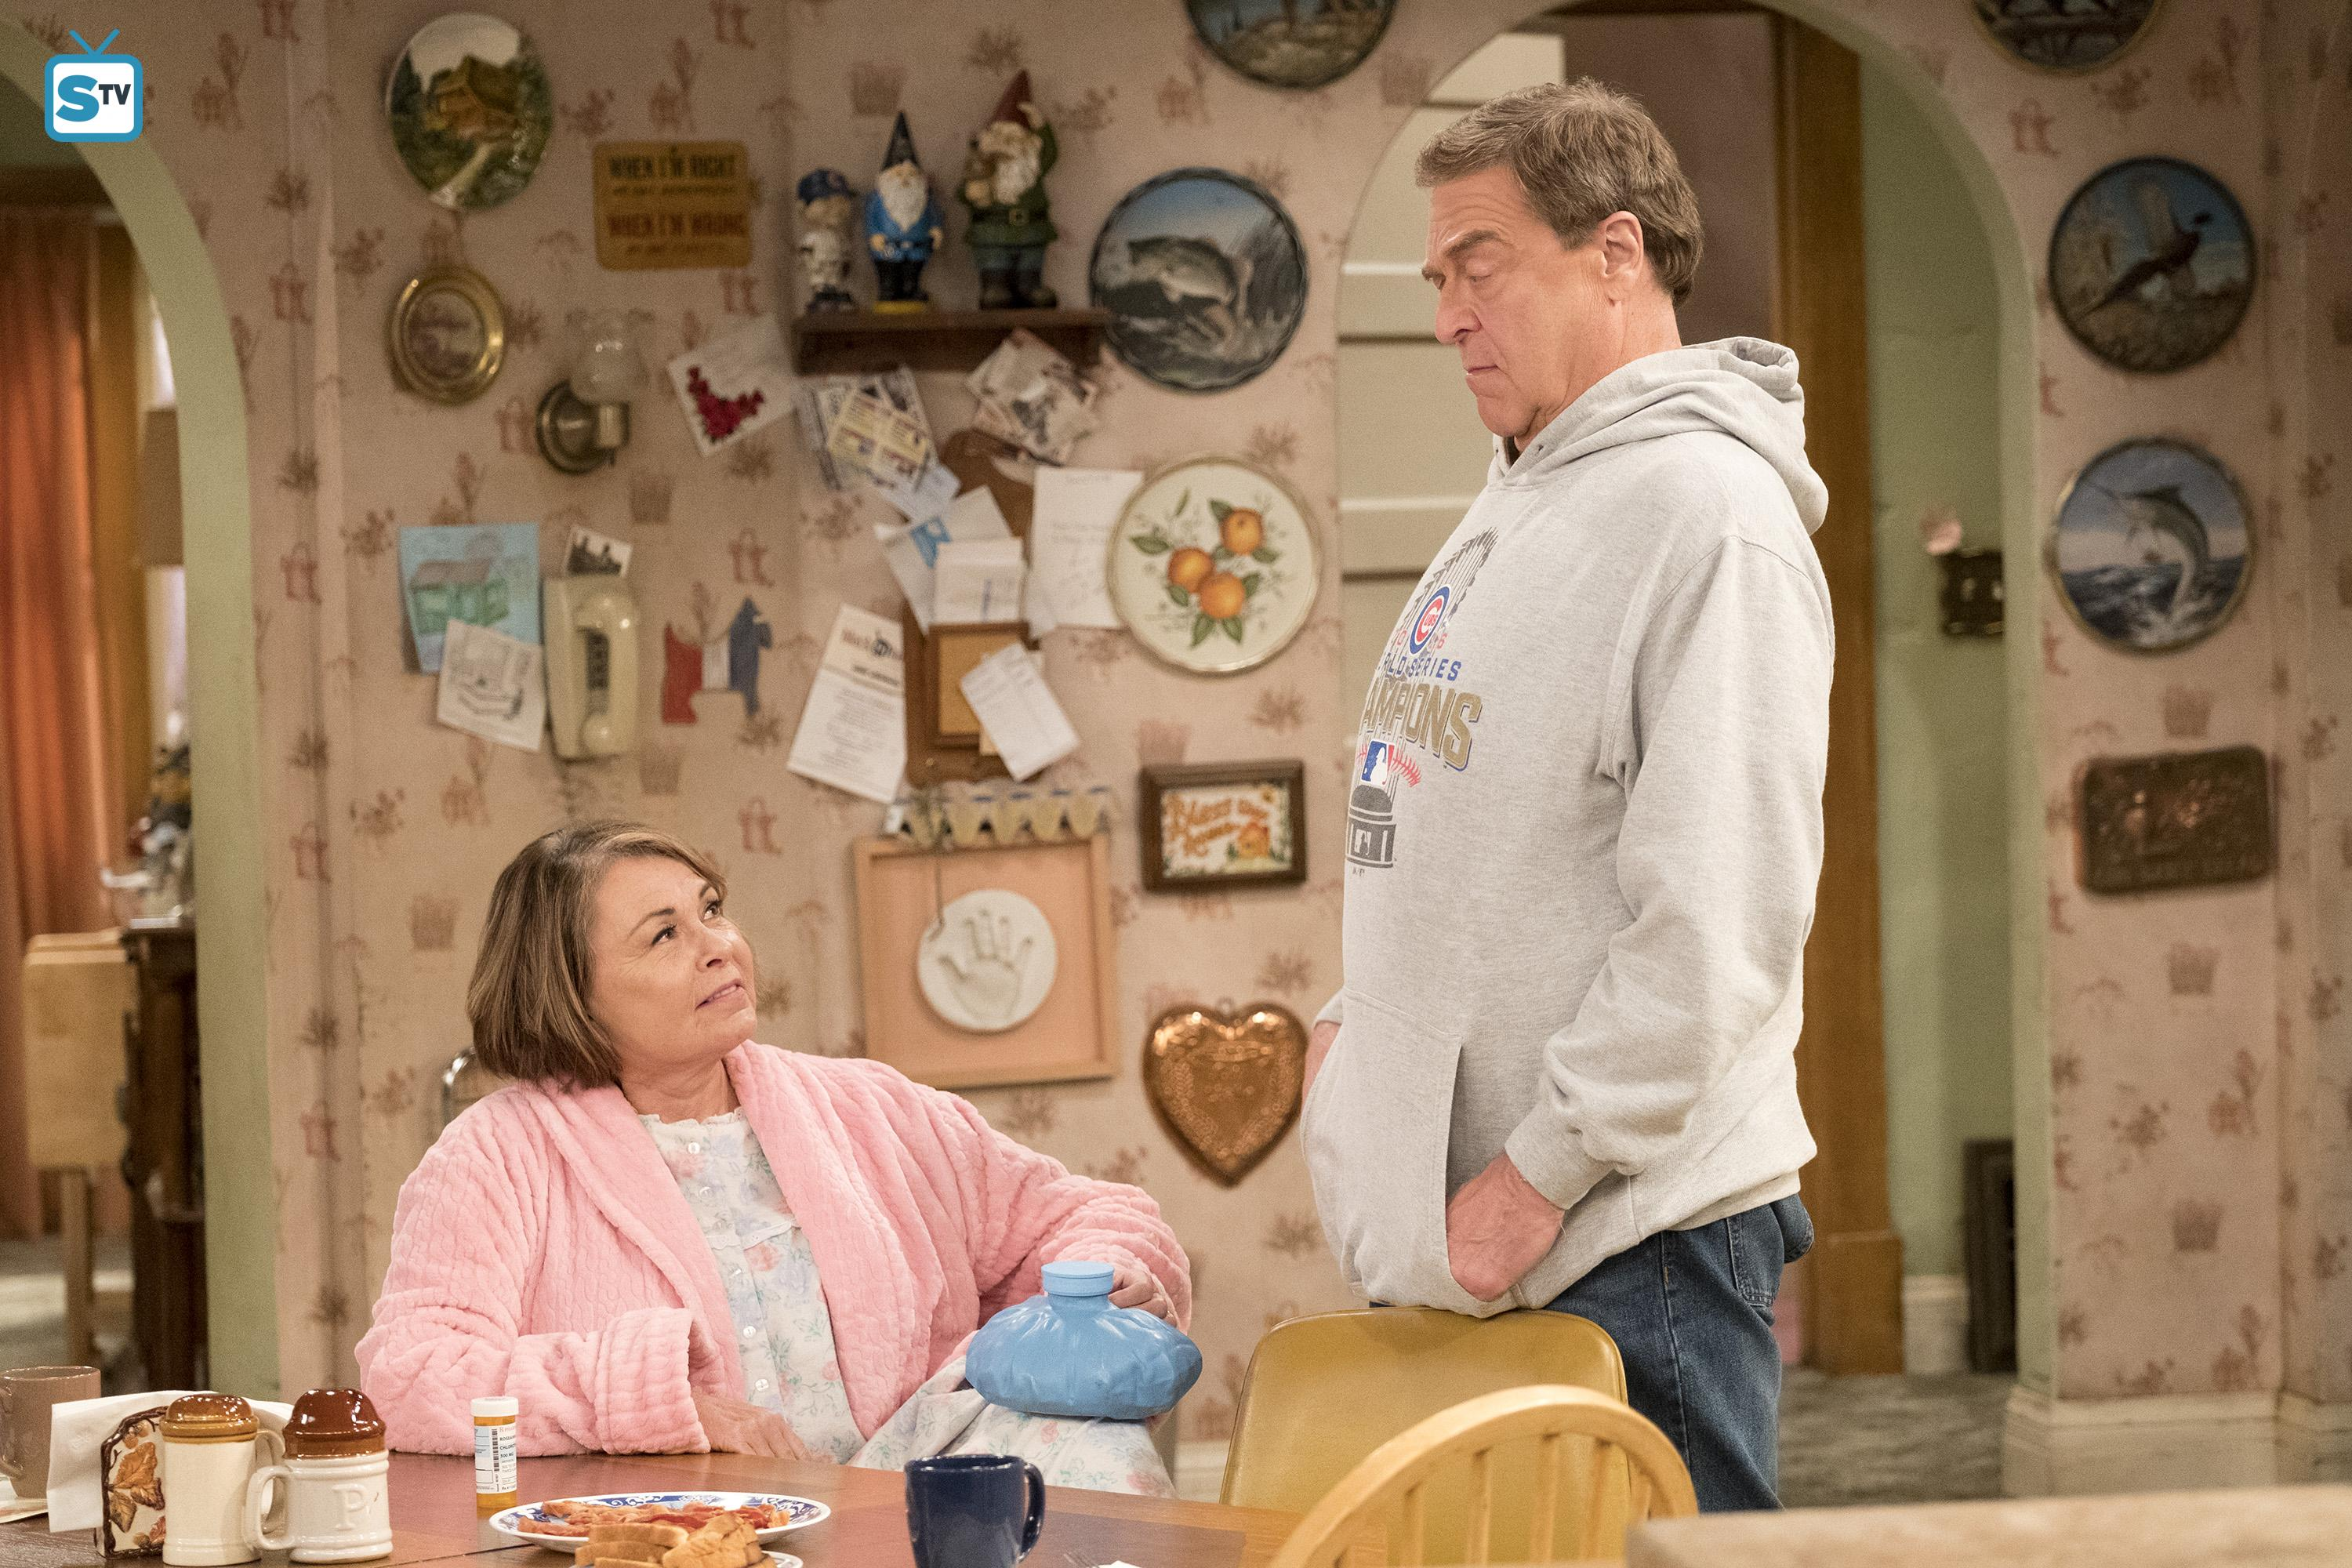 10x08 - Netflix and Pill - Roseanne and Dan